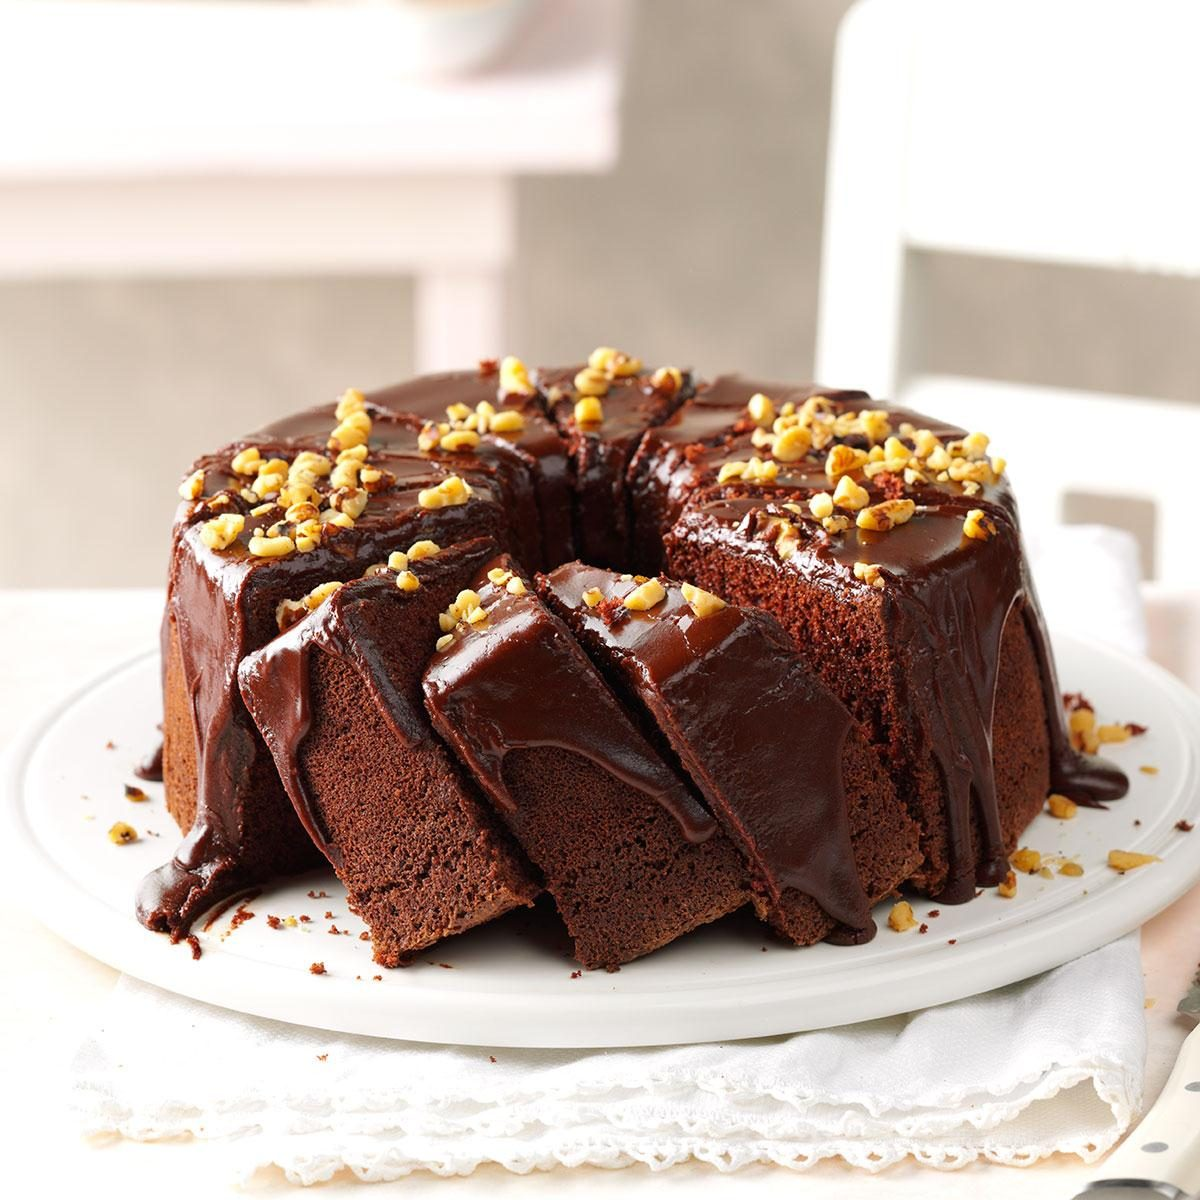 How To Make Coconut Chocolate Cake